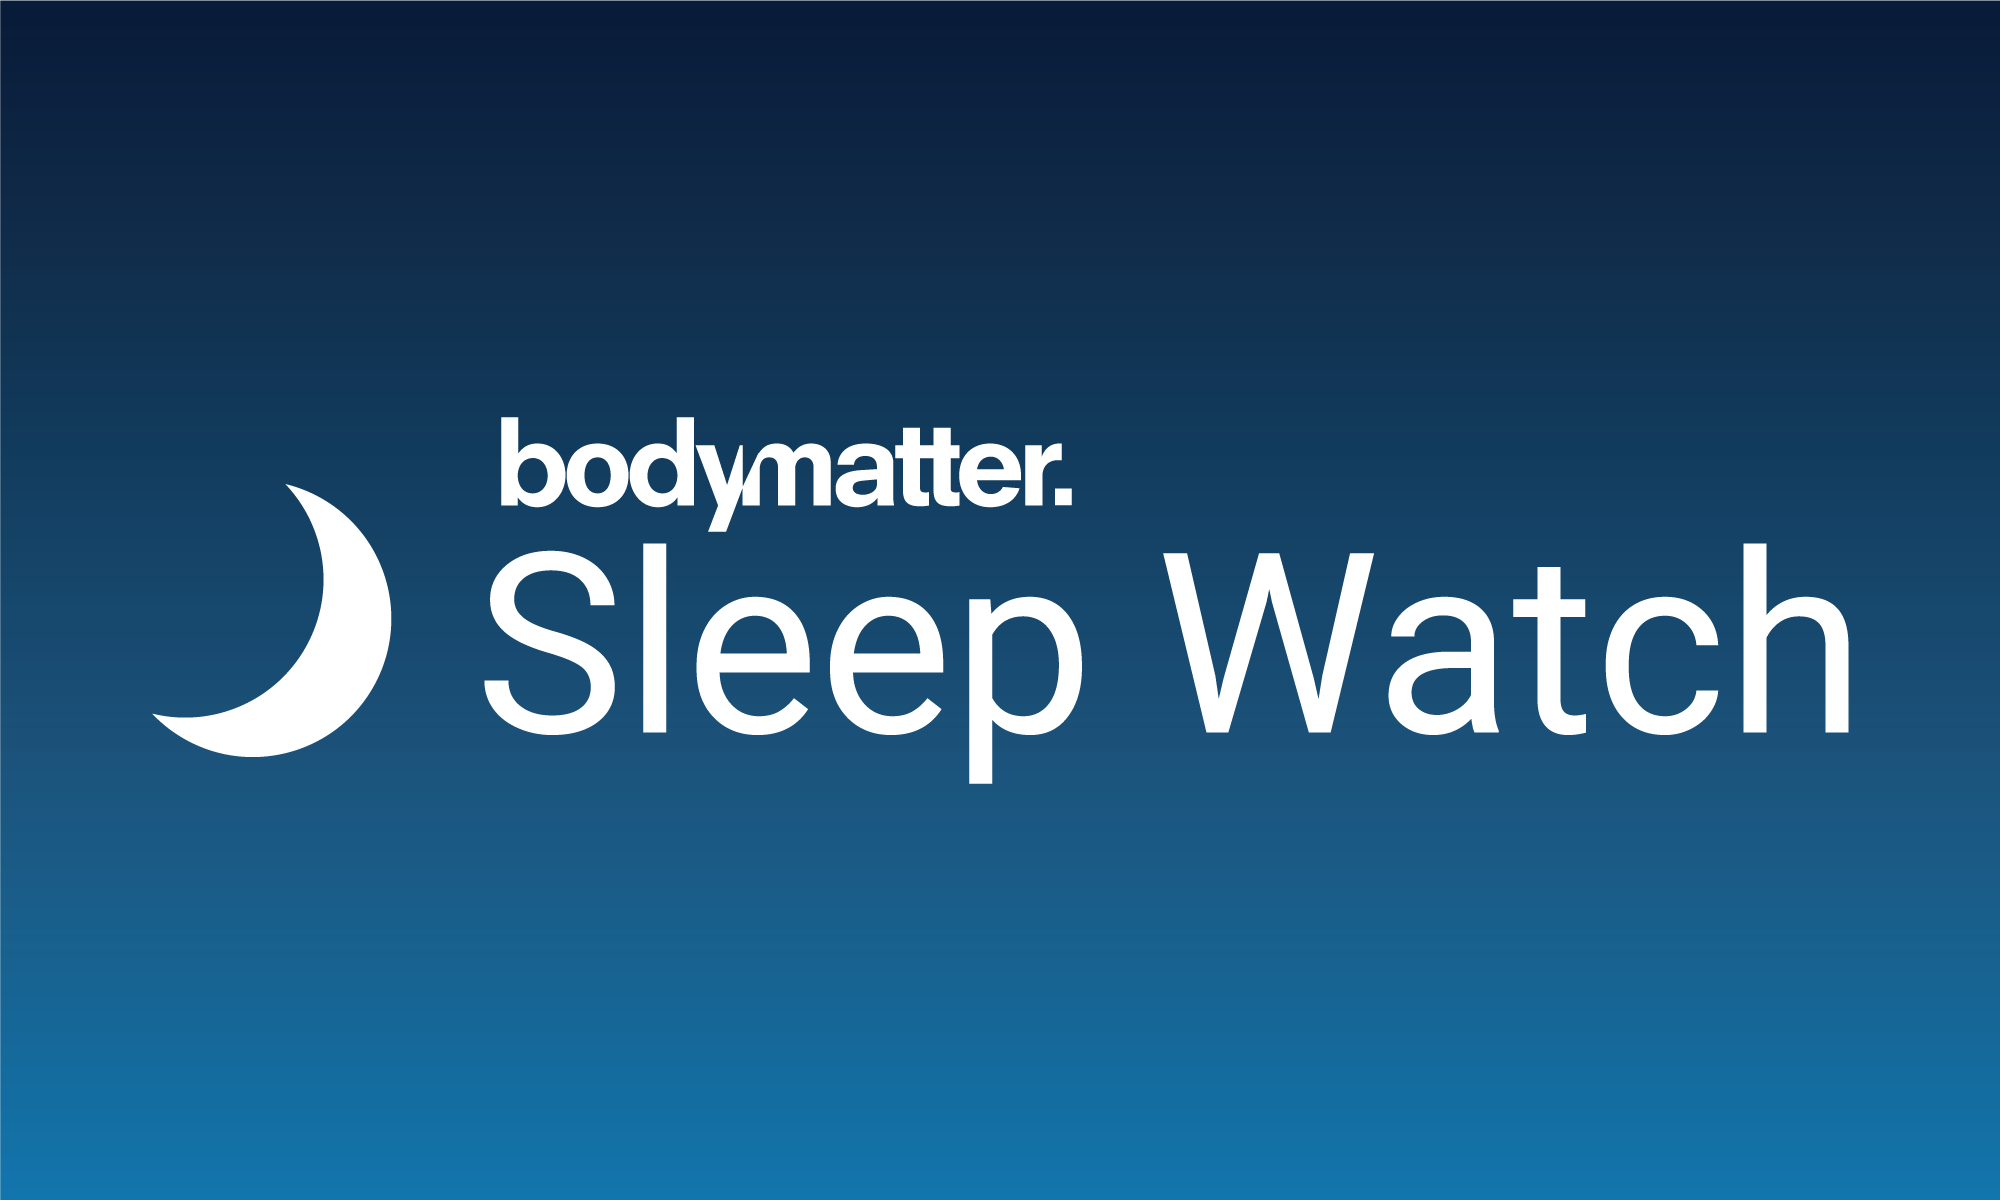 Sleep Watch by Bodymatter Logo